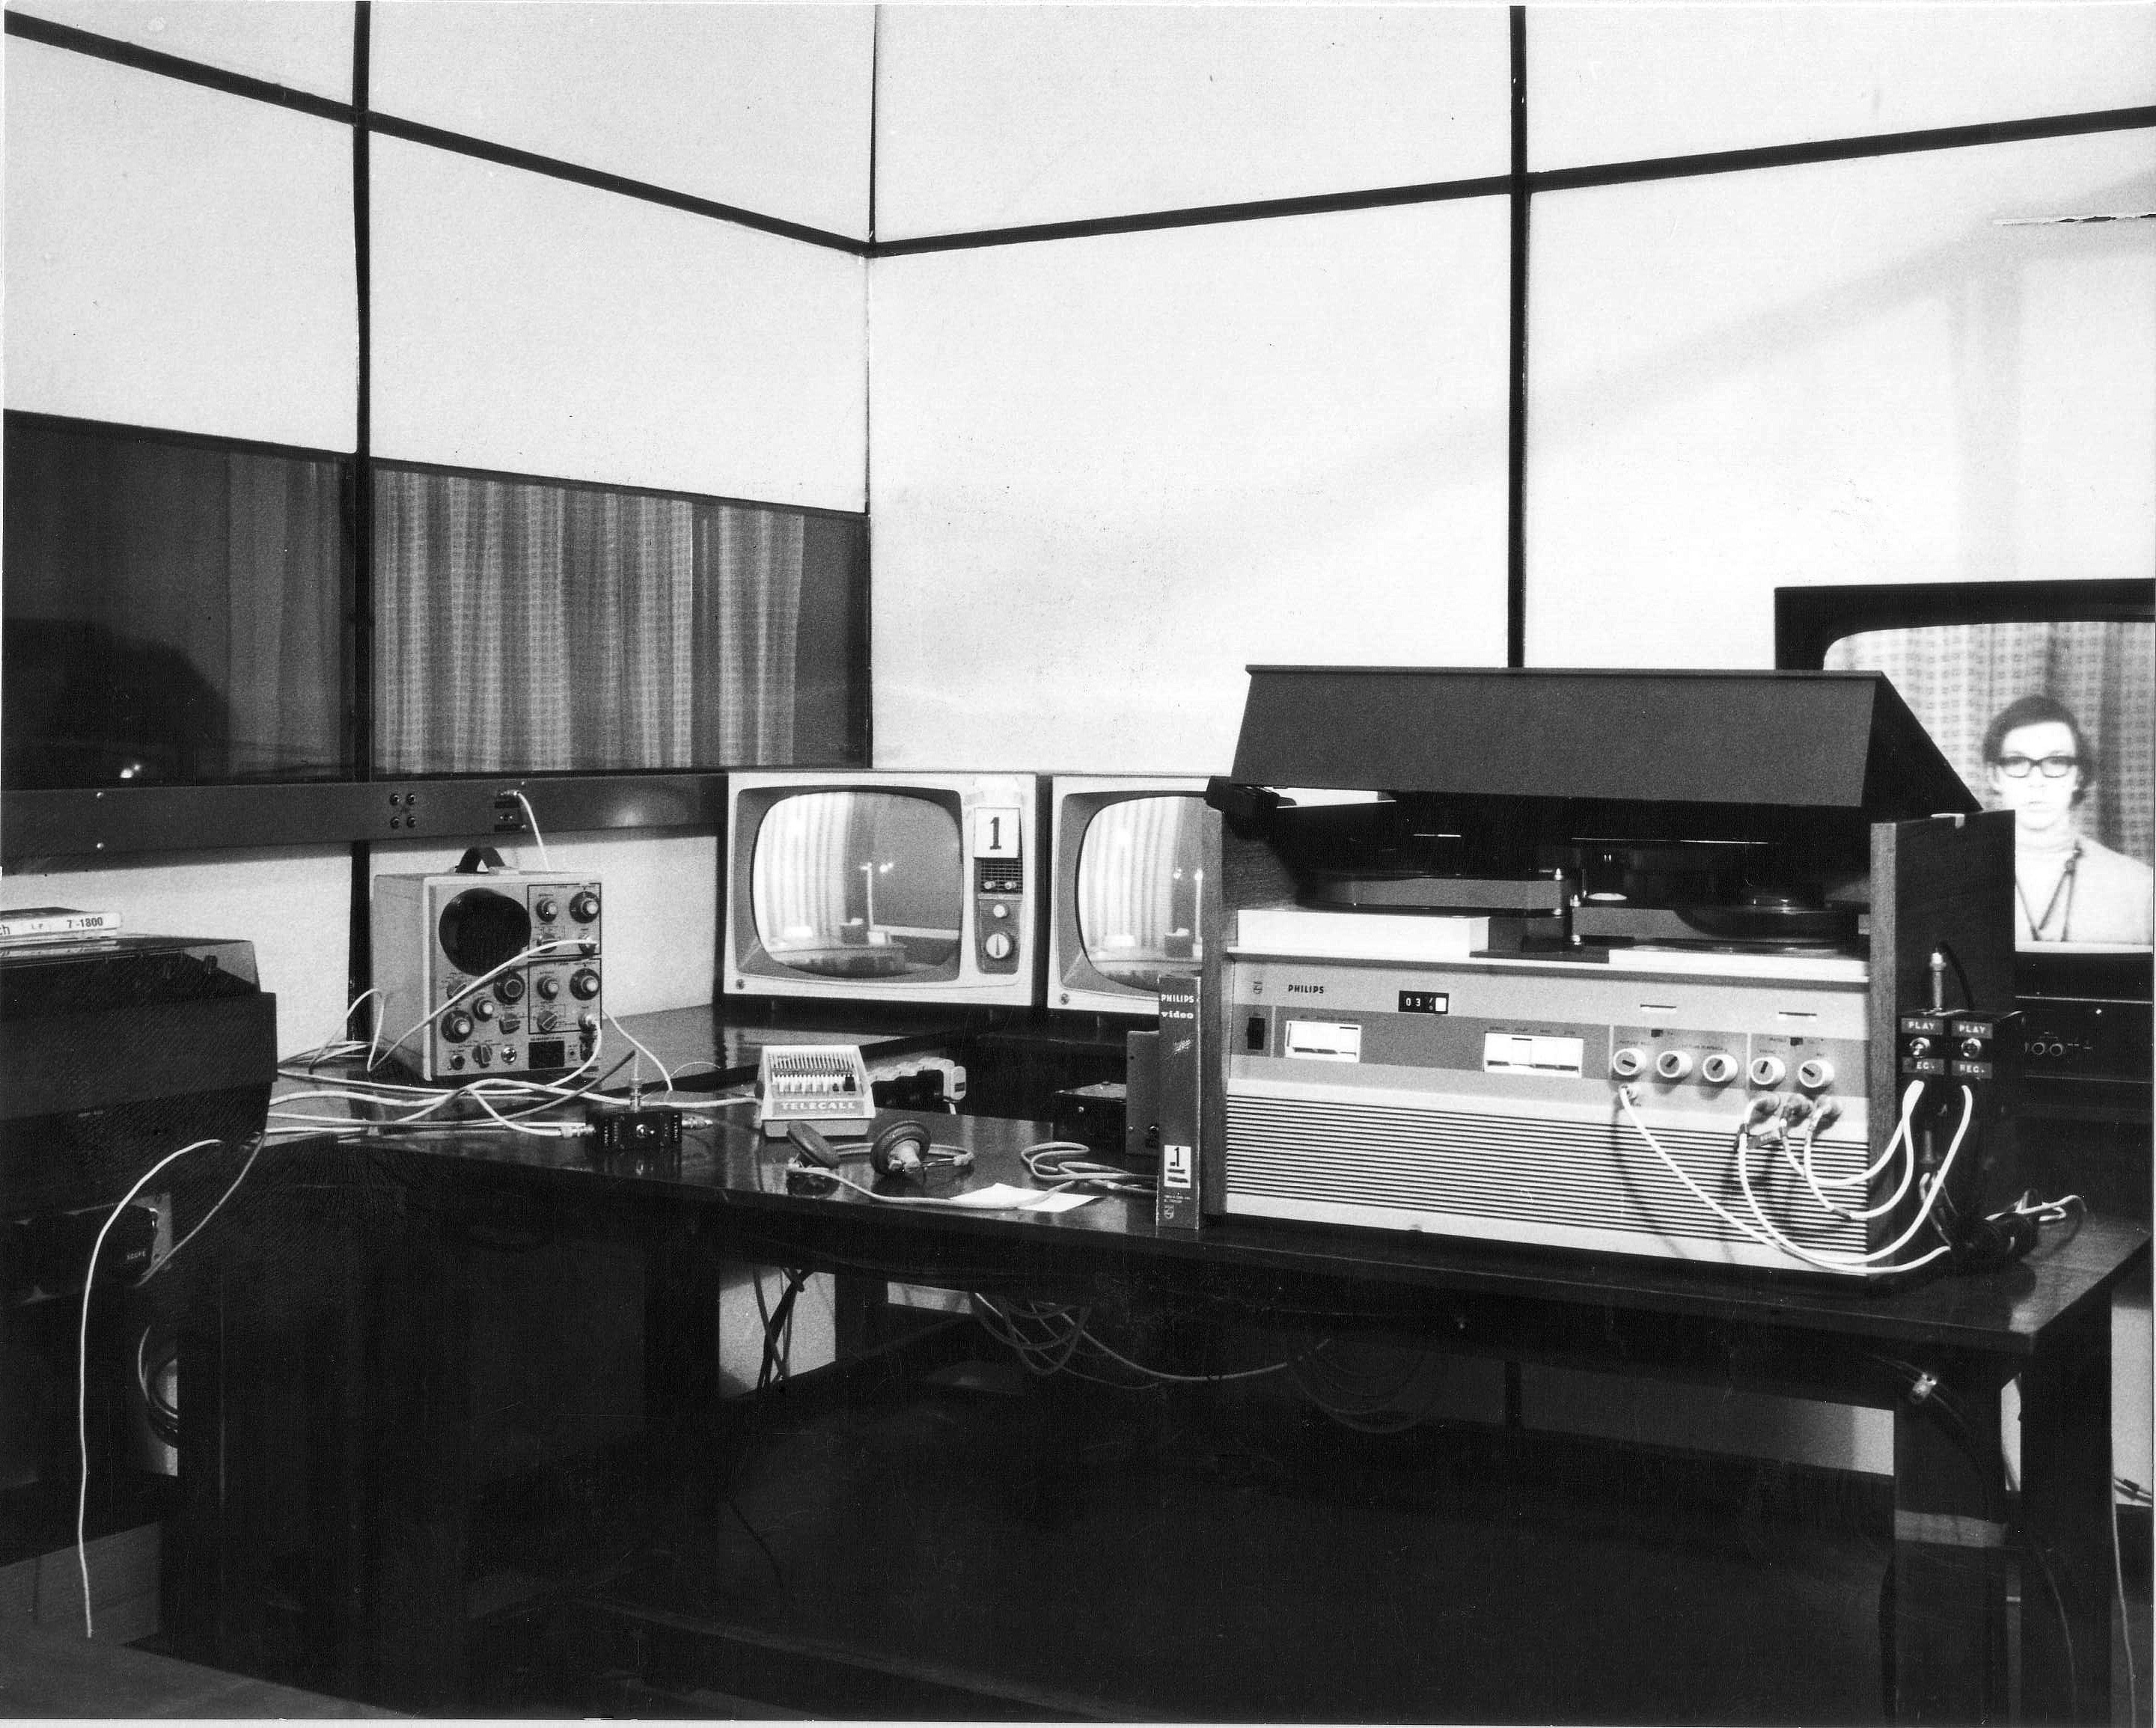 In the black and white photo you'll see our pride and joy, a Philips EL3400 one inch videotape machine which was FULL of valves and got extremely hot.